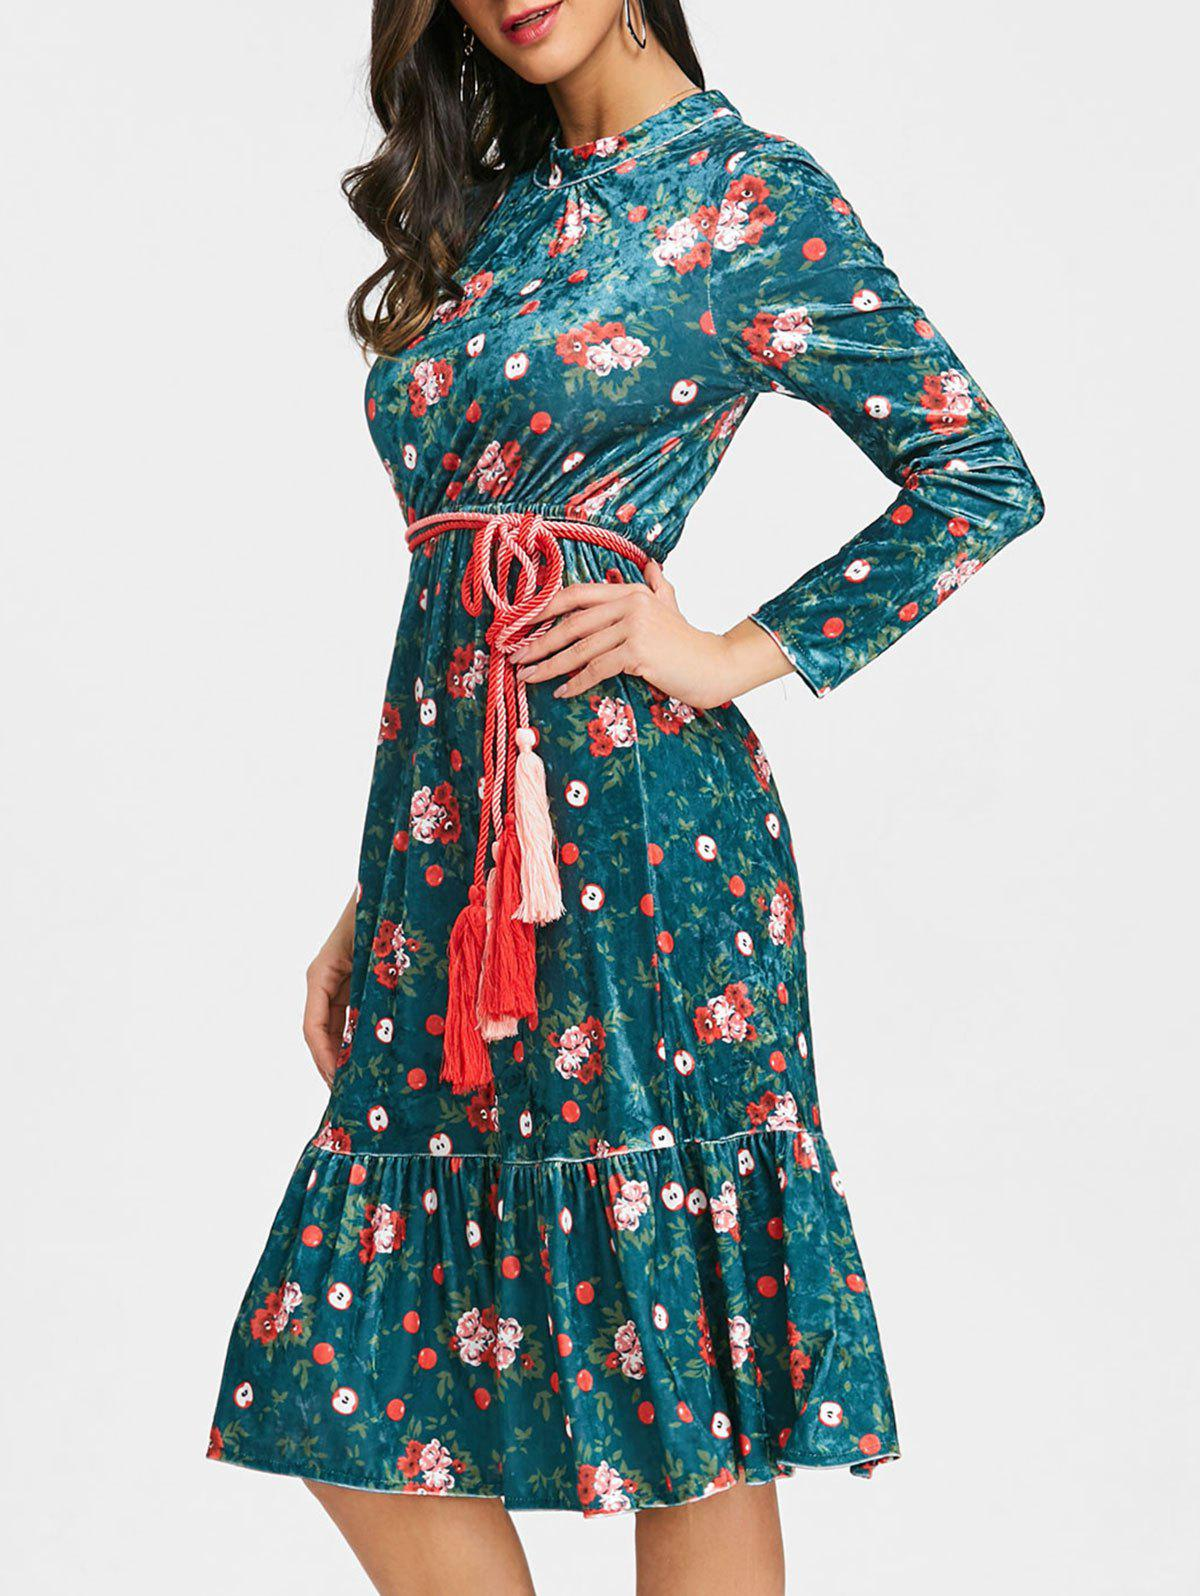 New Floral Flounce Velvet Midi Dress